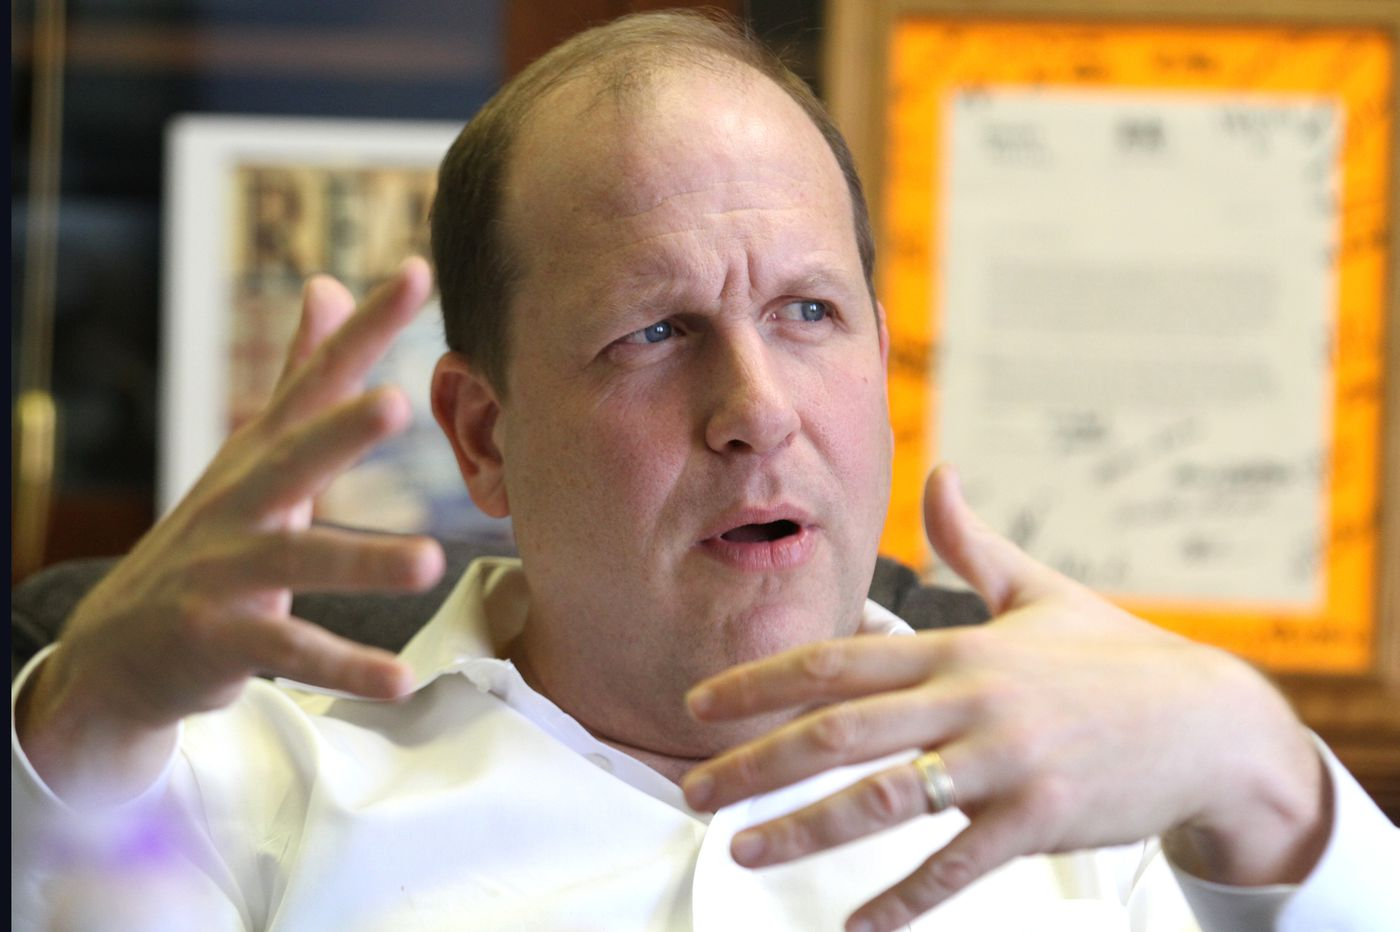 Daylin Leach was a #MeToo moment for Pennsylvania Democrats. But beating him won't be easy.